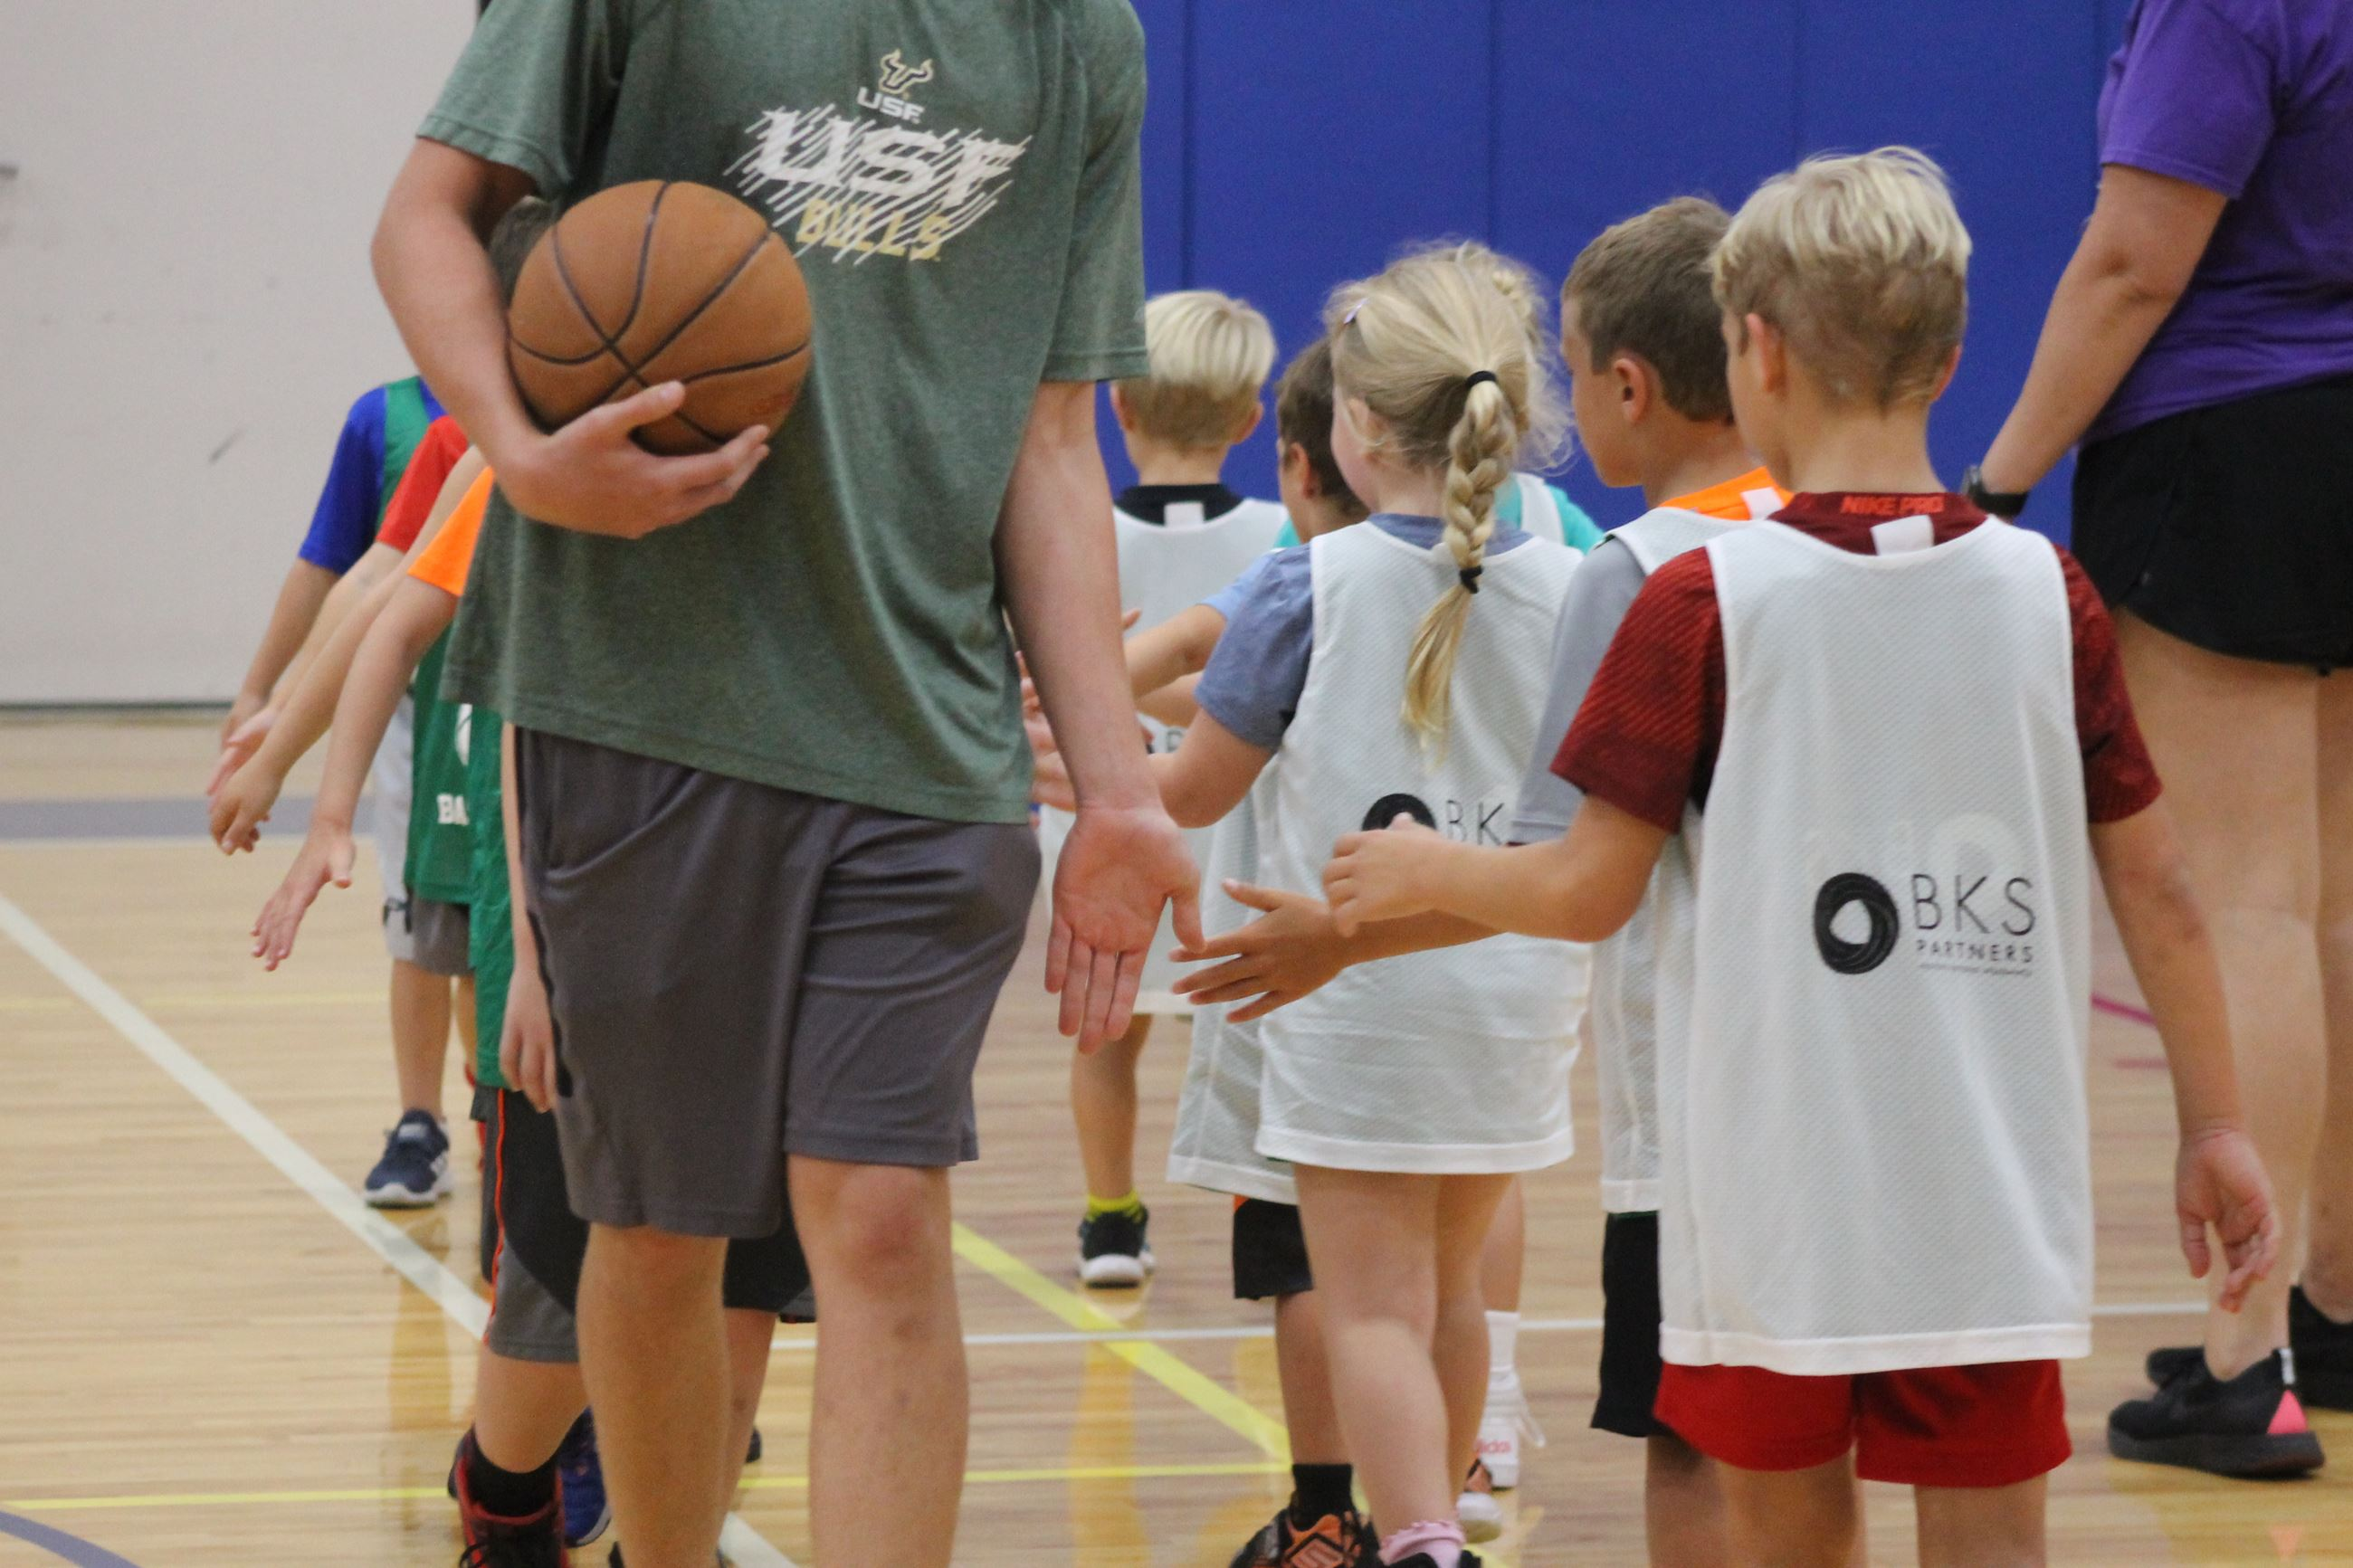 Children and coaches are lined up, high fiving after a basketball game